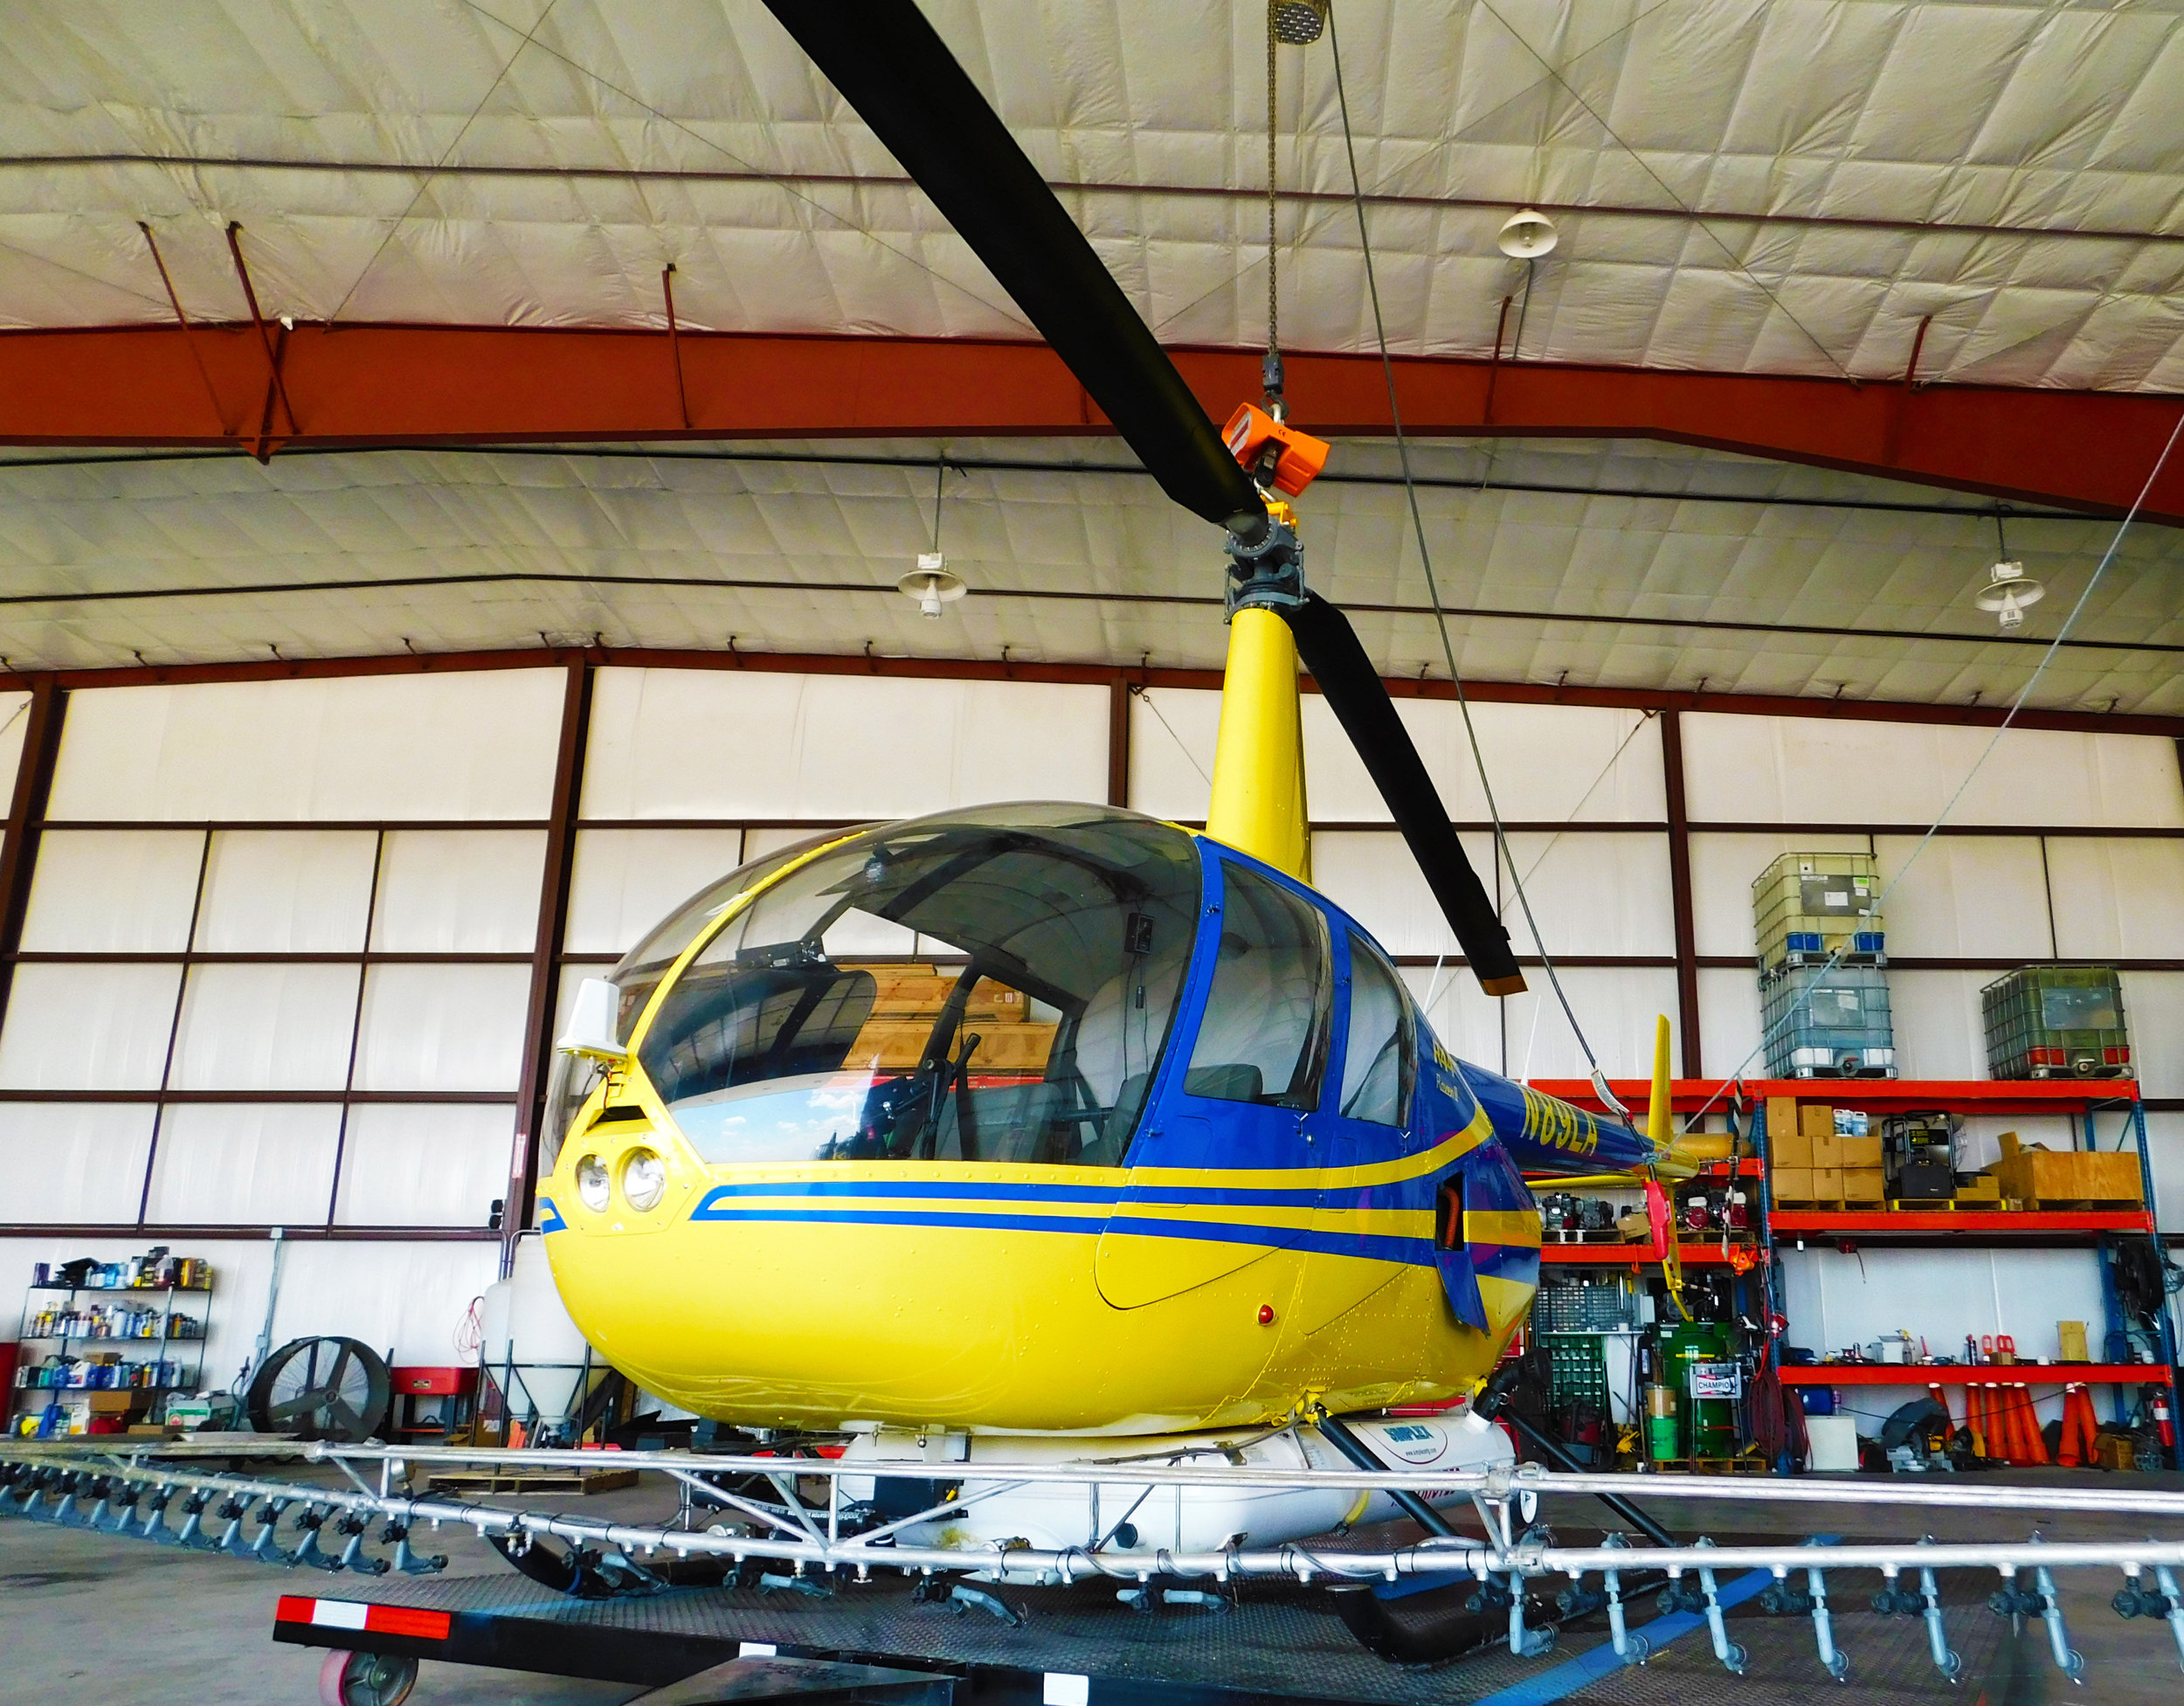 Johnson owns a local helicopter service where he flies on cover crops and pesticides.